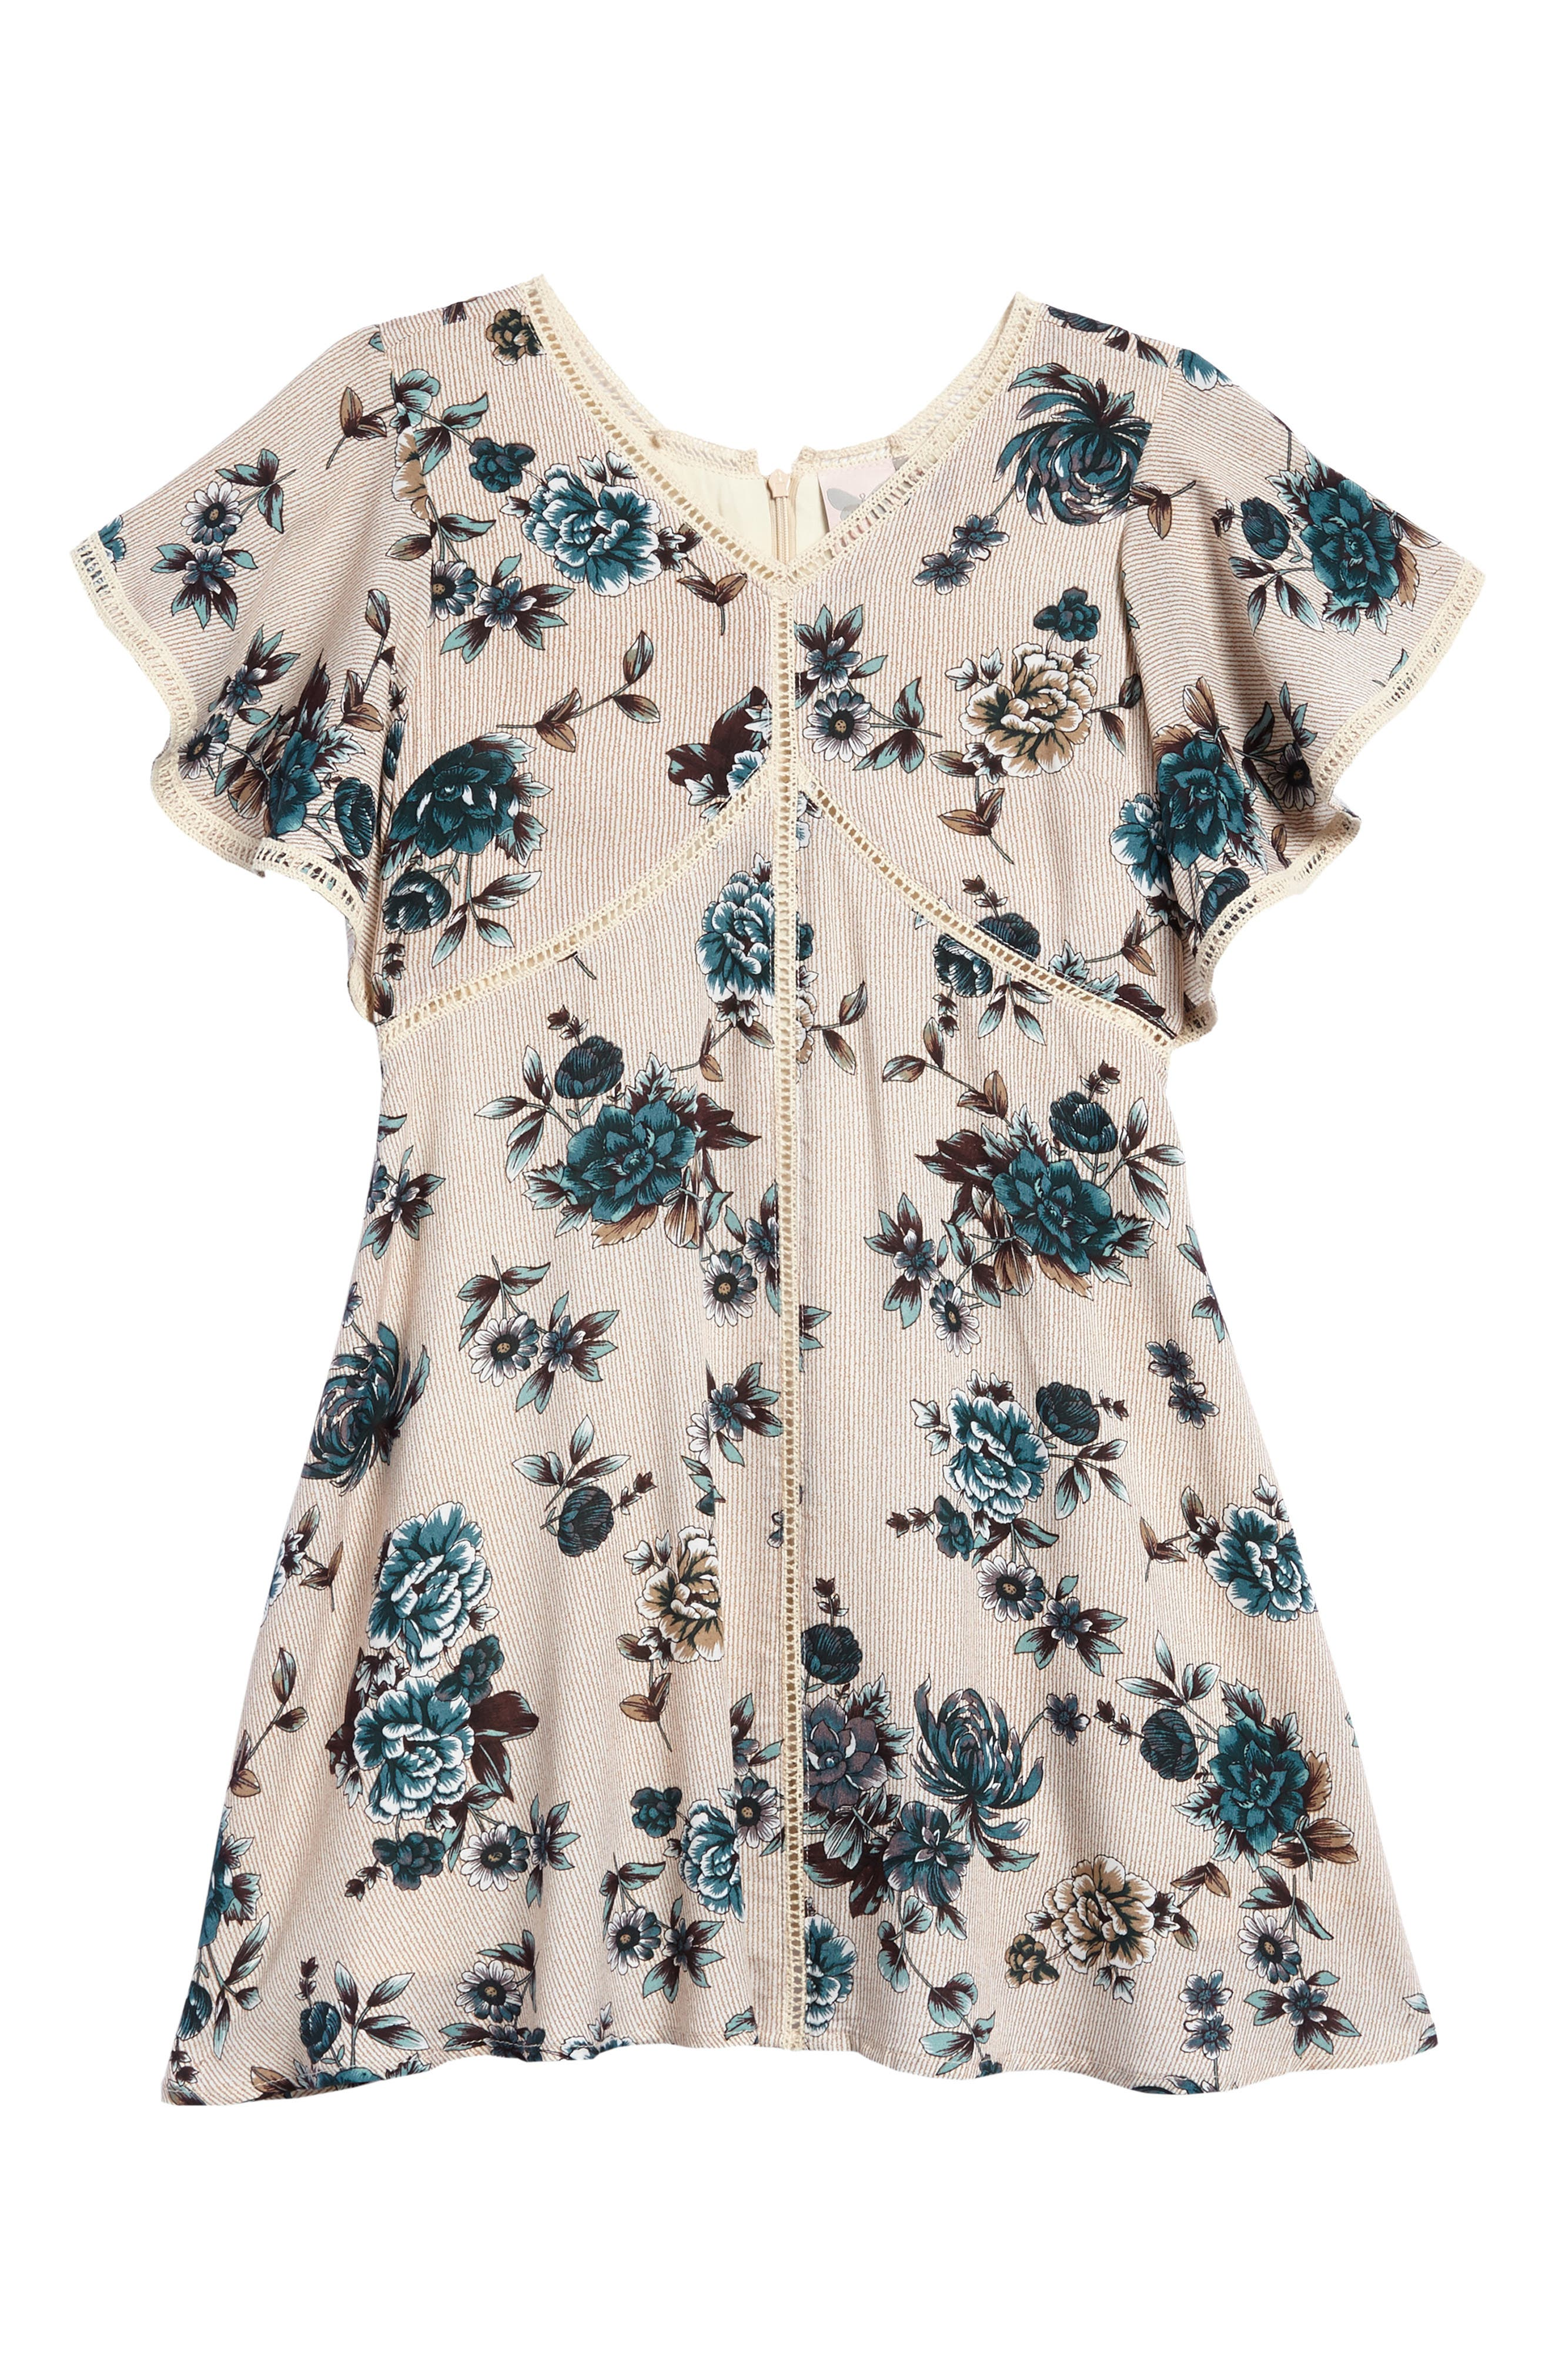 Main Image - For All Seasons Floral Print Ruffle Sleeve Dress (Big Girls)